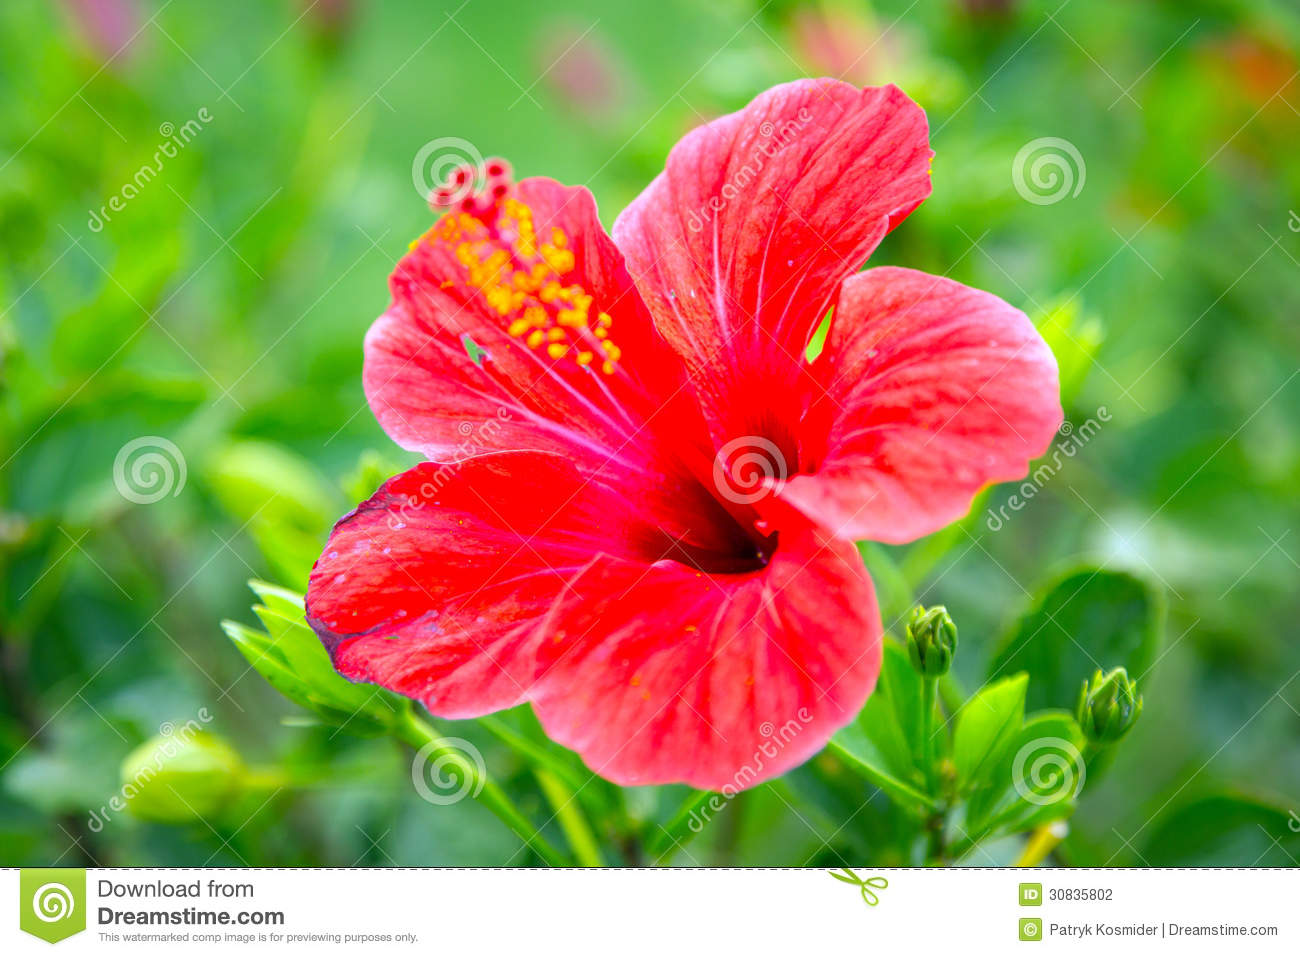 Fiori Hibiscus.Red Hibiscus Flowers In The Tropical Garden Stock Photo Image Of